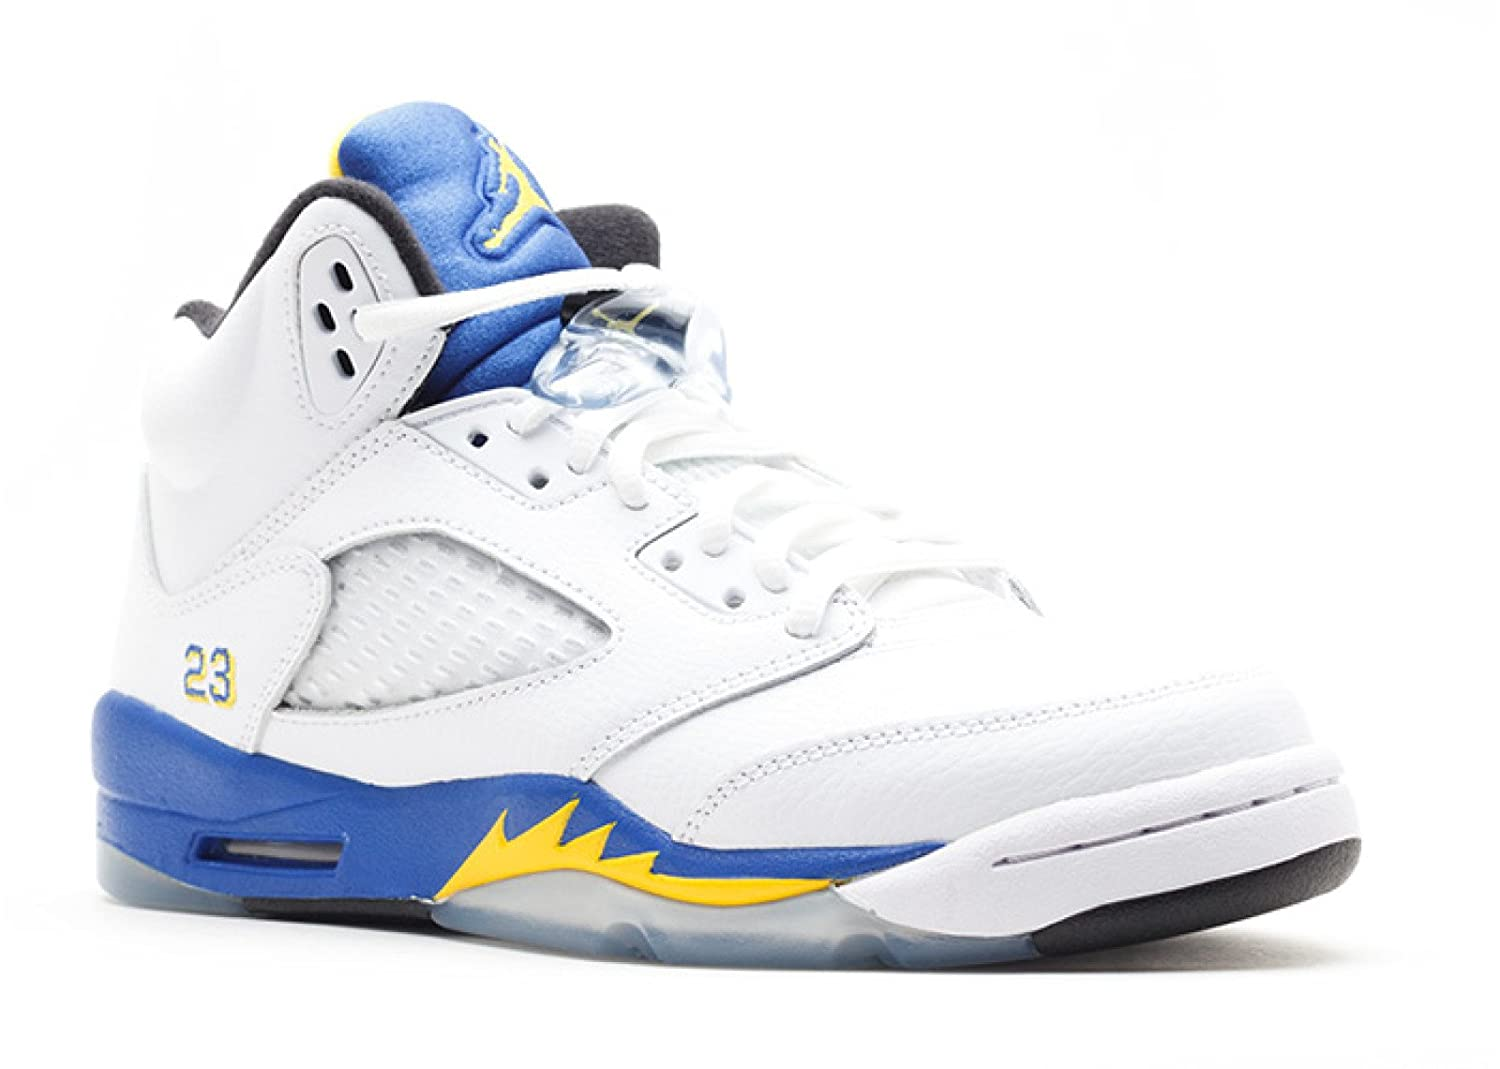 big sale fbdf9 9e704 Amazon.com   Nike Boys Air Jordan 5 Retro (GS) Laney Leather Basketball  Shoes Size 5Y   Fashion Sneakers